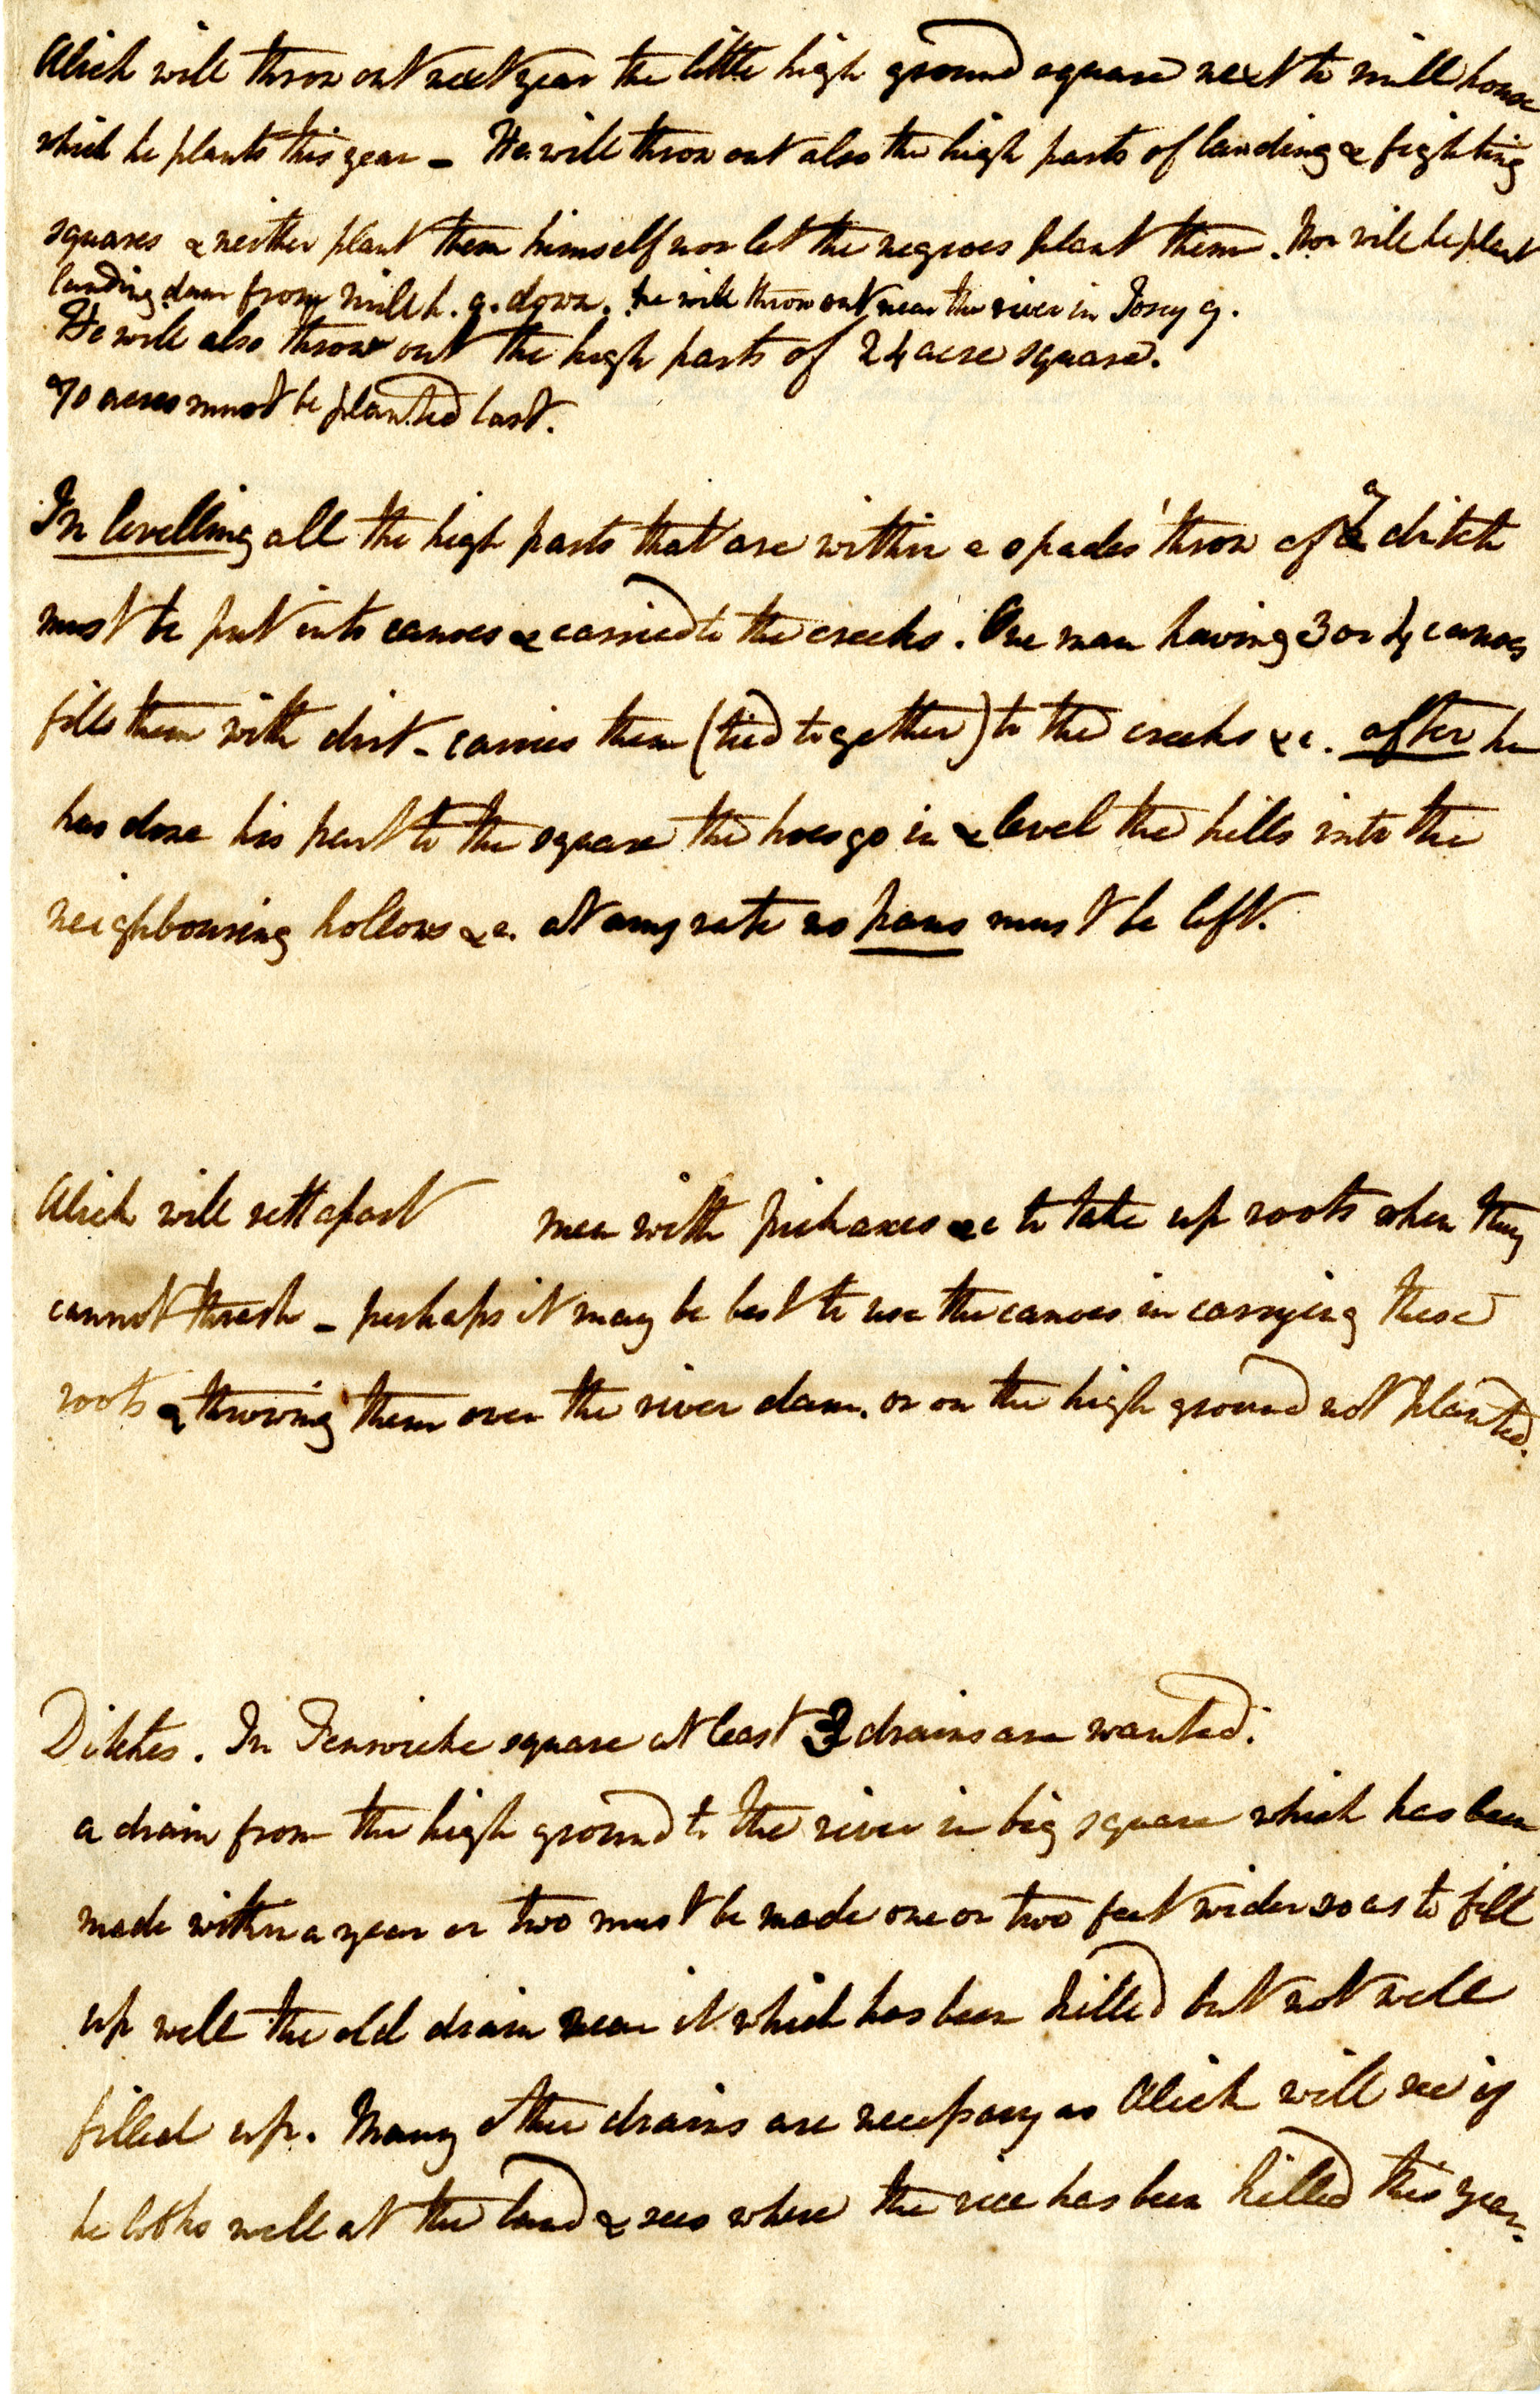 Rough notes and instructions for planting, ditch digging, draining land, etc. for Pinckney lands